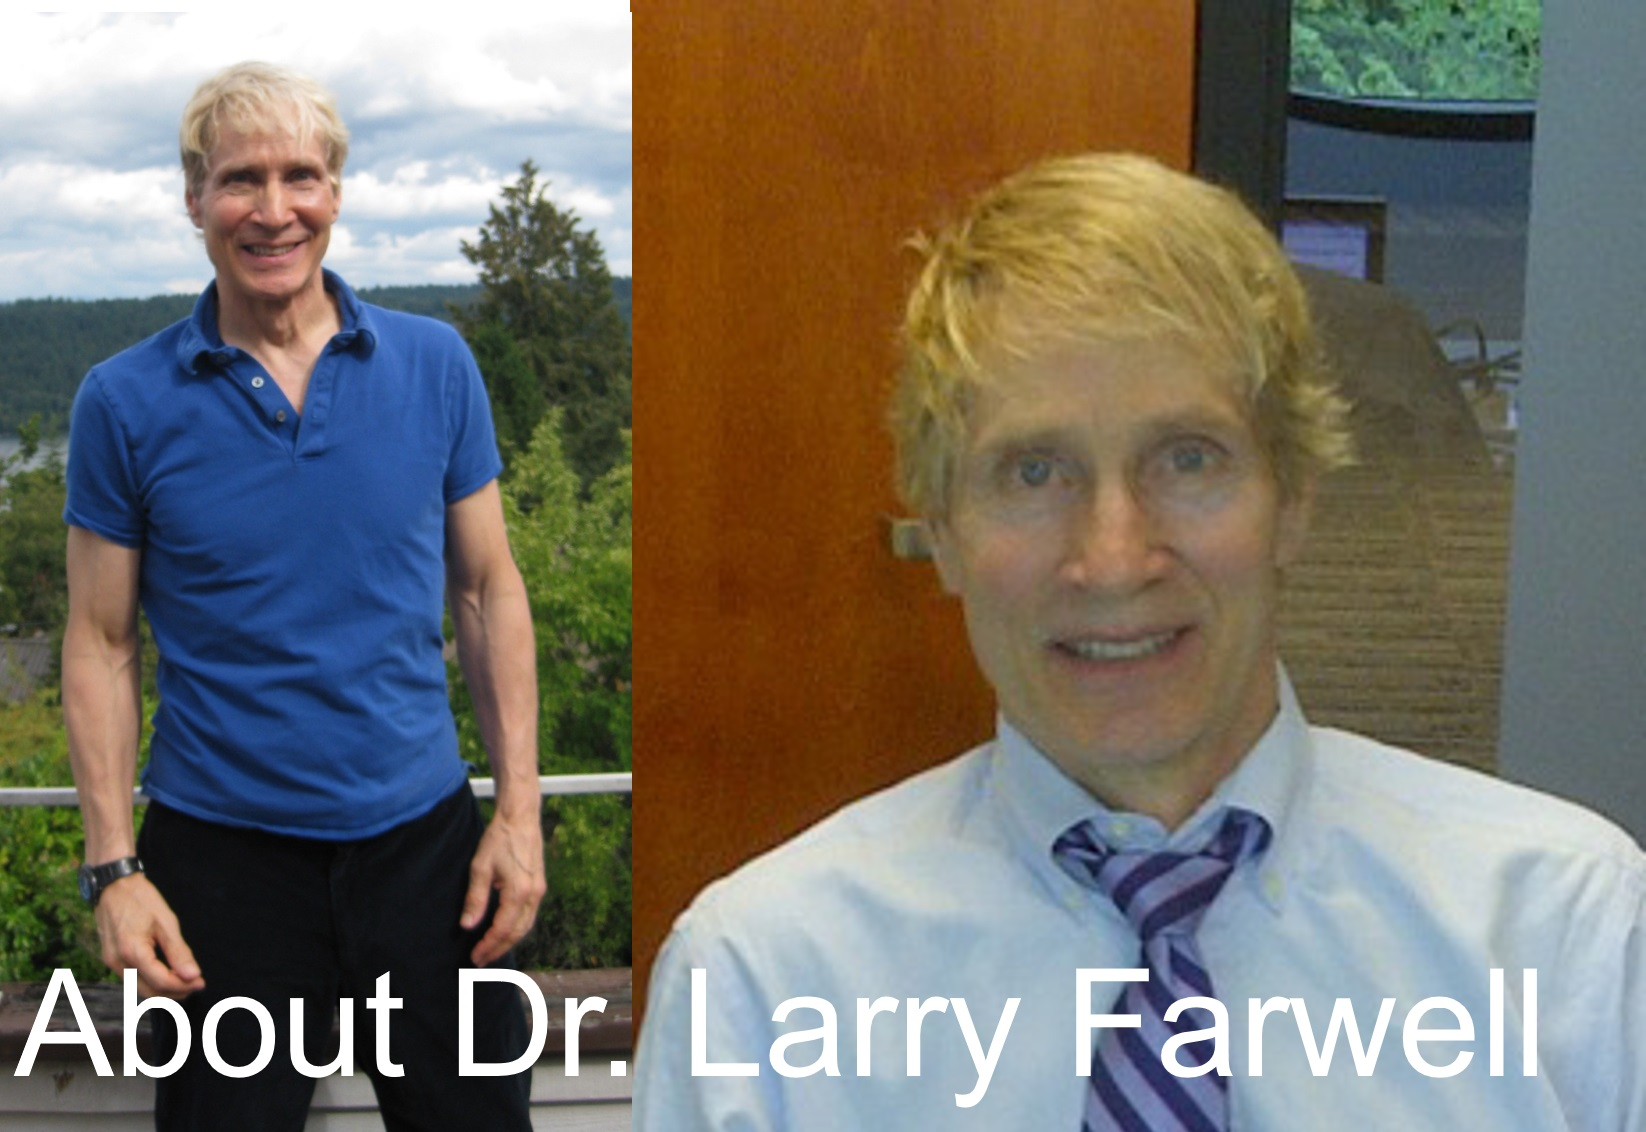 About Dr. Farwell Pic Plus Label